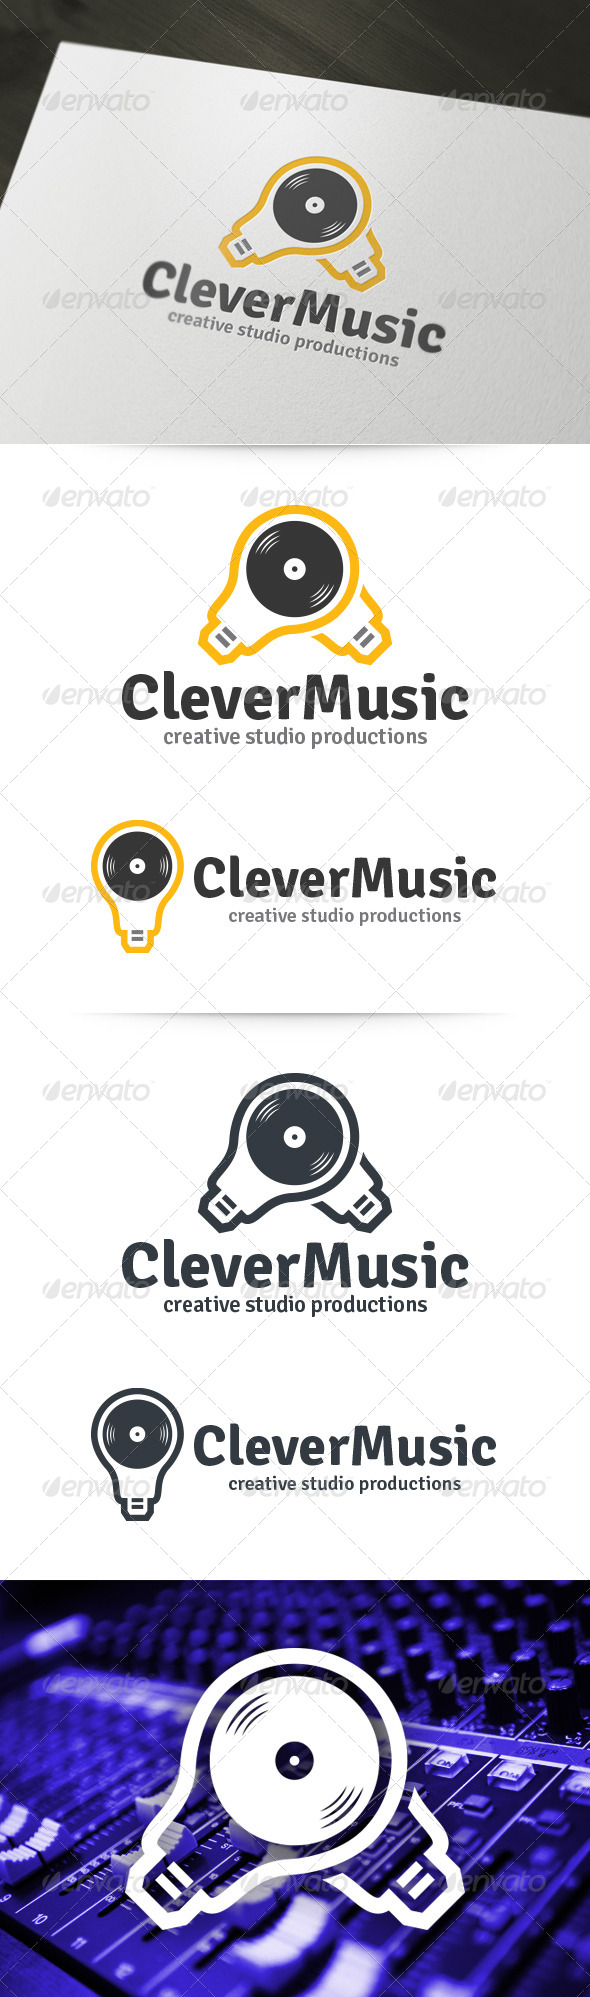 GraphicRiver Clever Music Logo 6119810